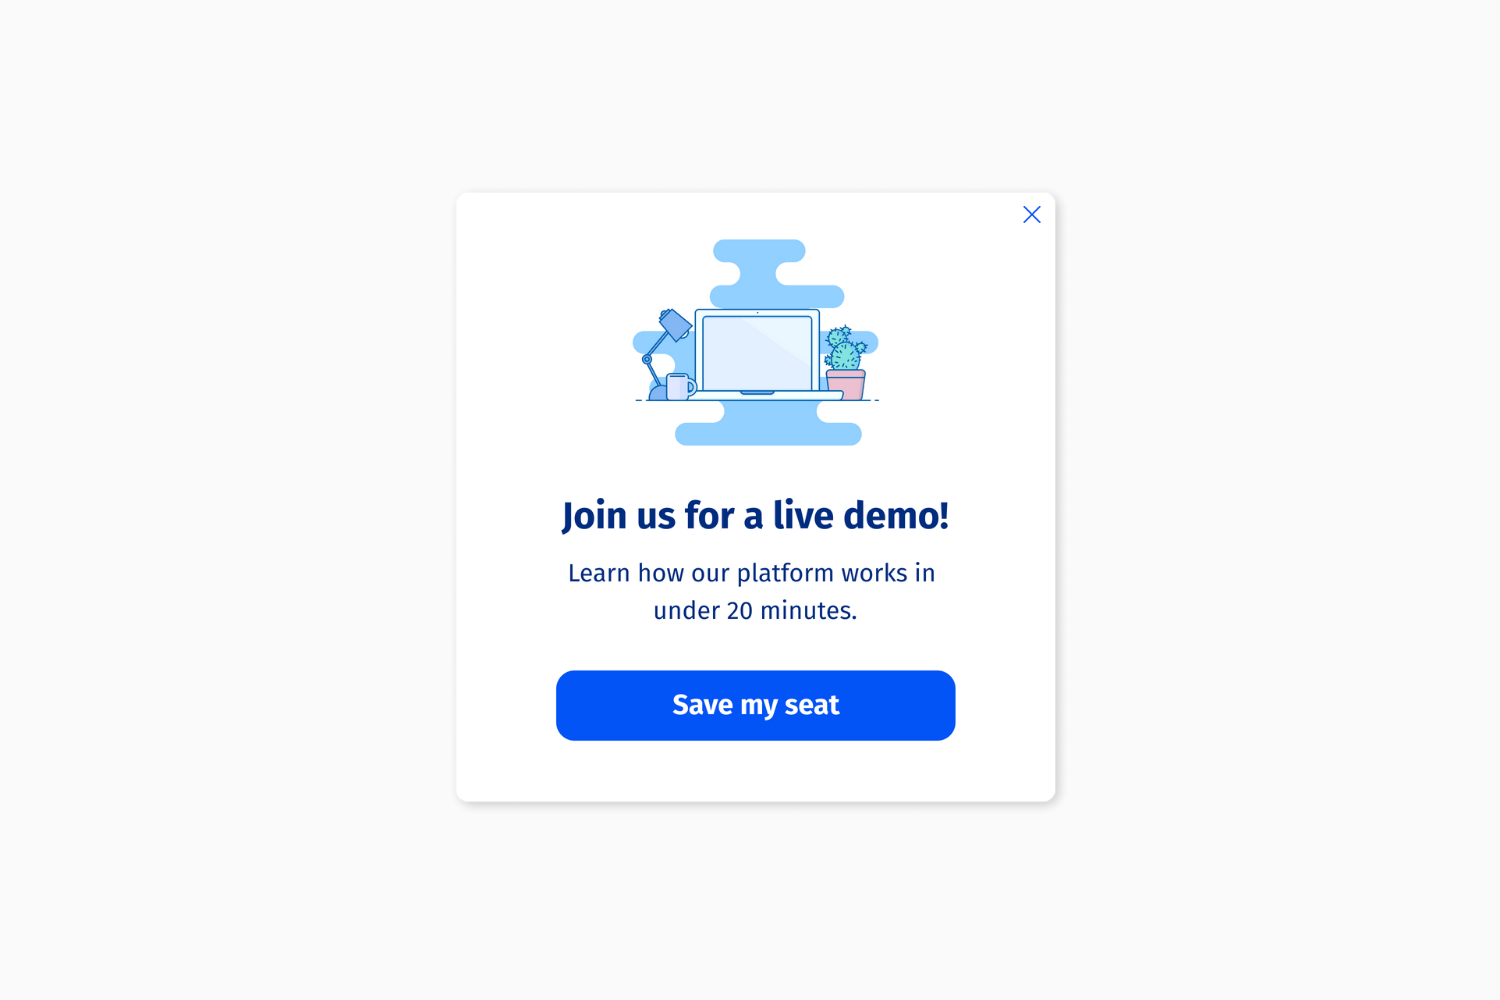 Helppier Product Demo and Webinars Templates - Join us for a live demo (Popup message)